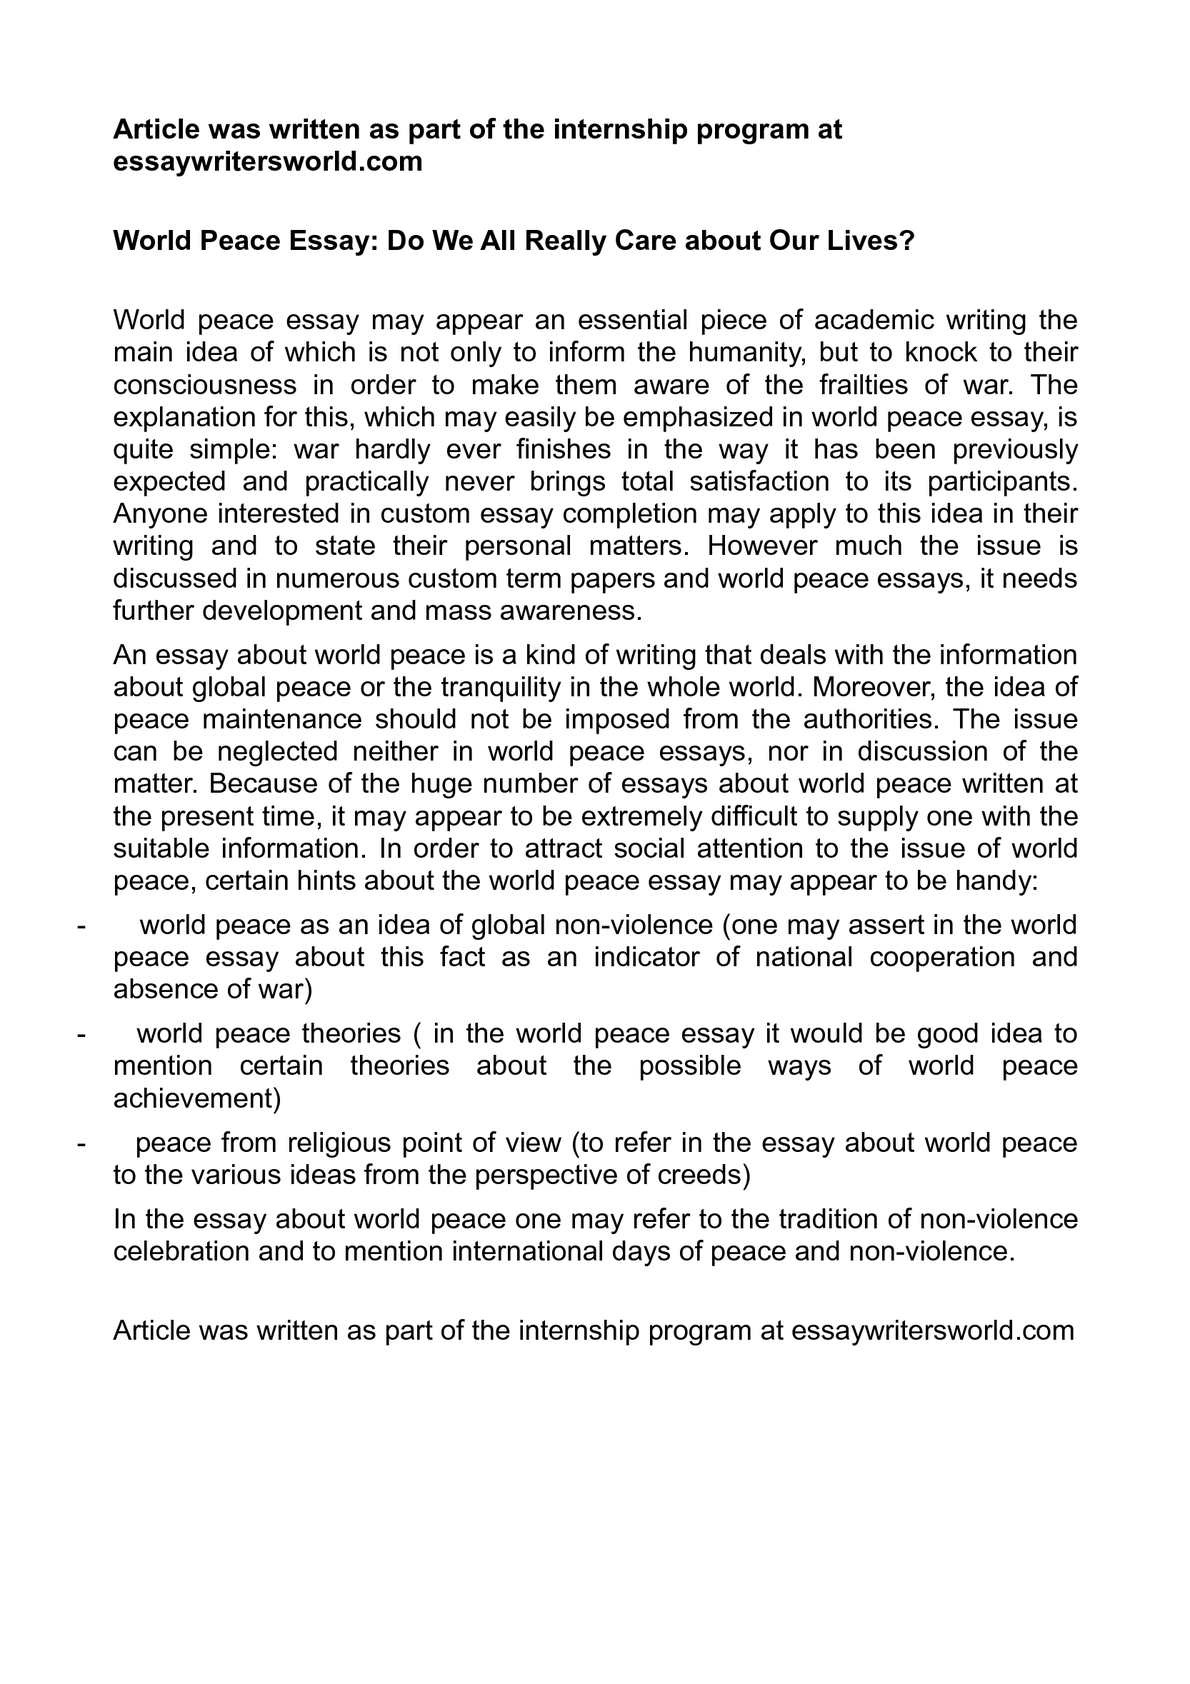 Essay about world peace